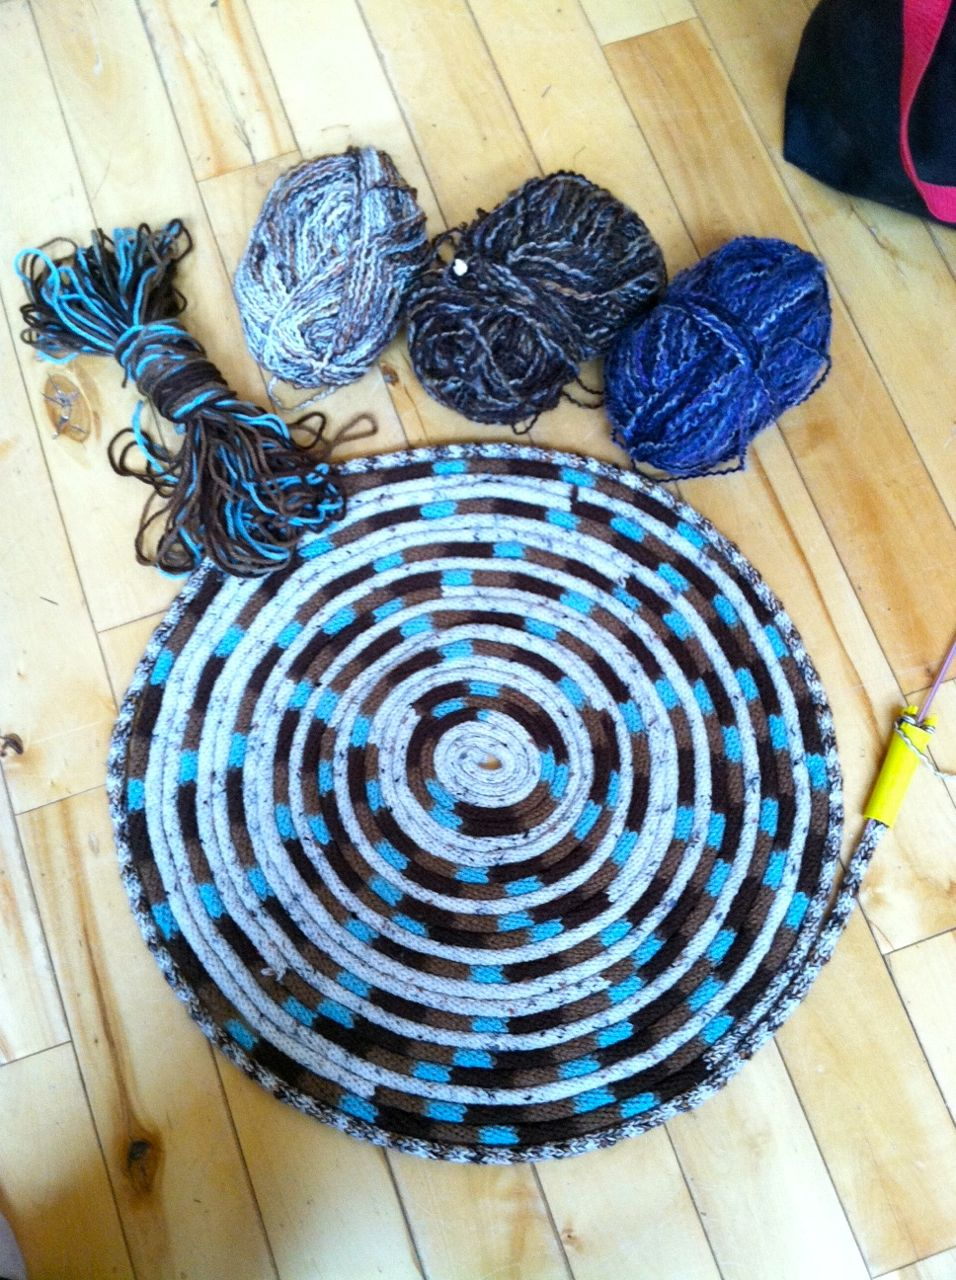 Knitting Knobby Projects : Amy s passions on my knitting knobby